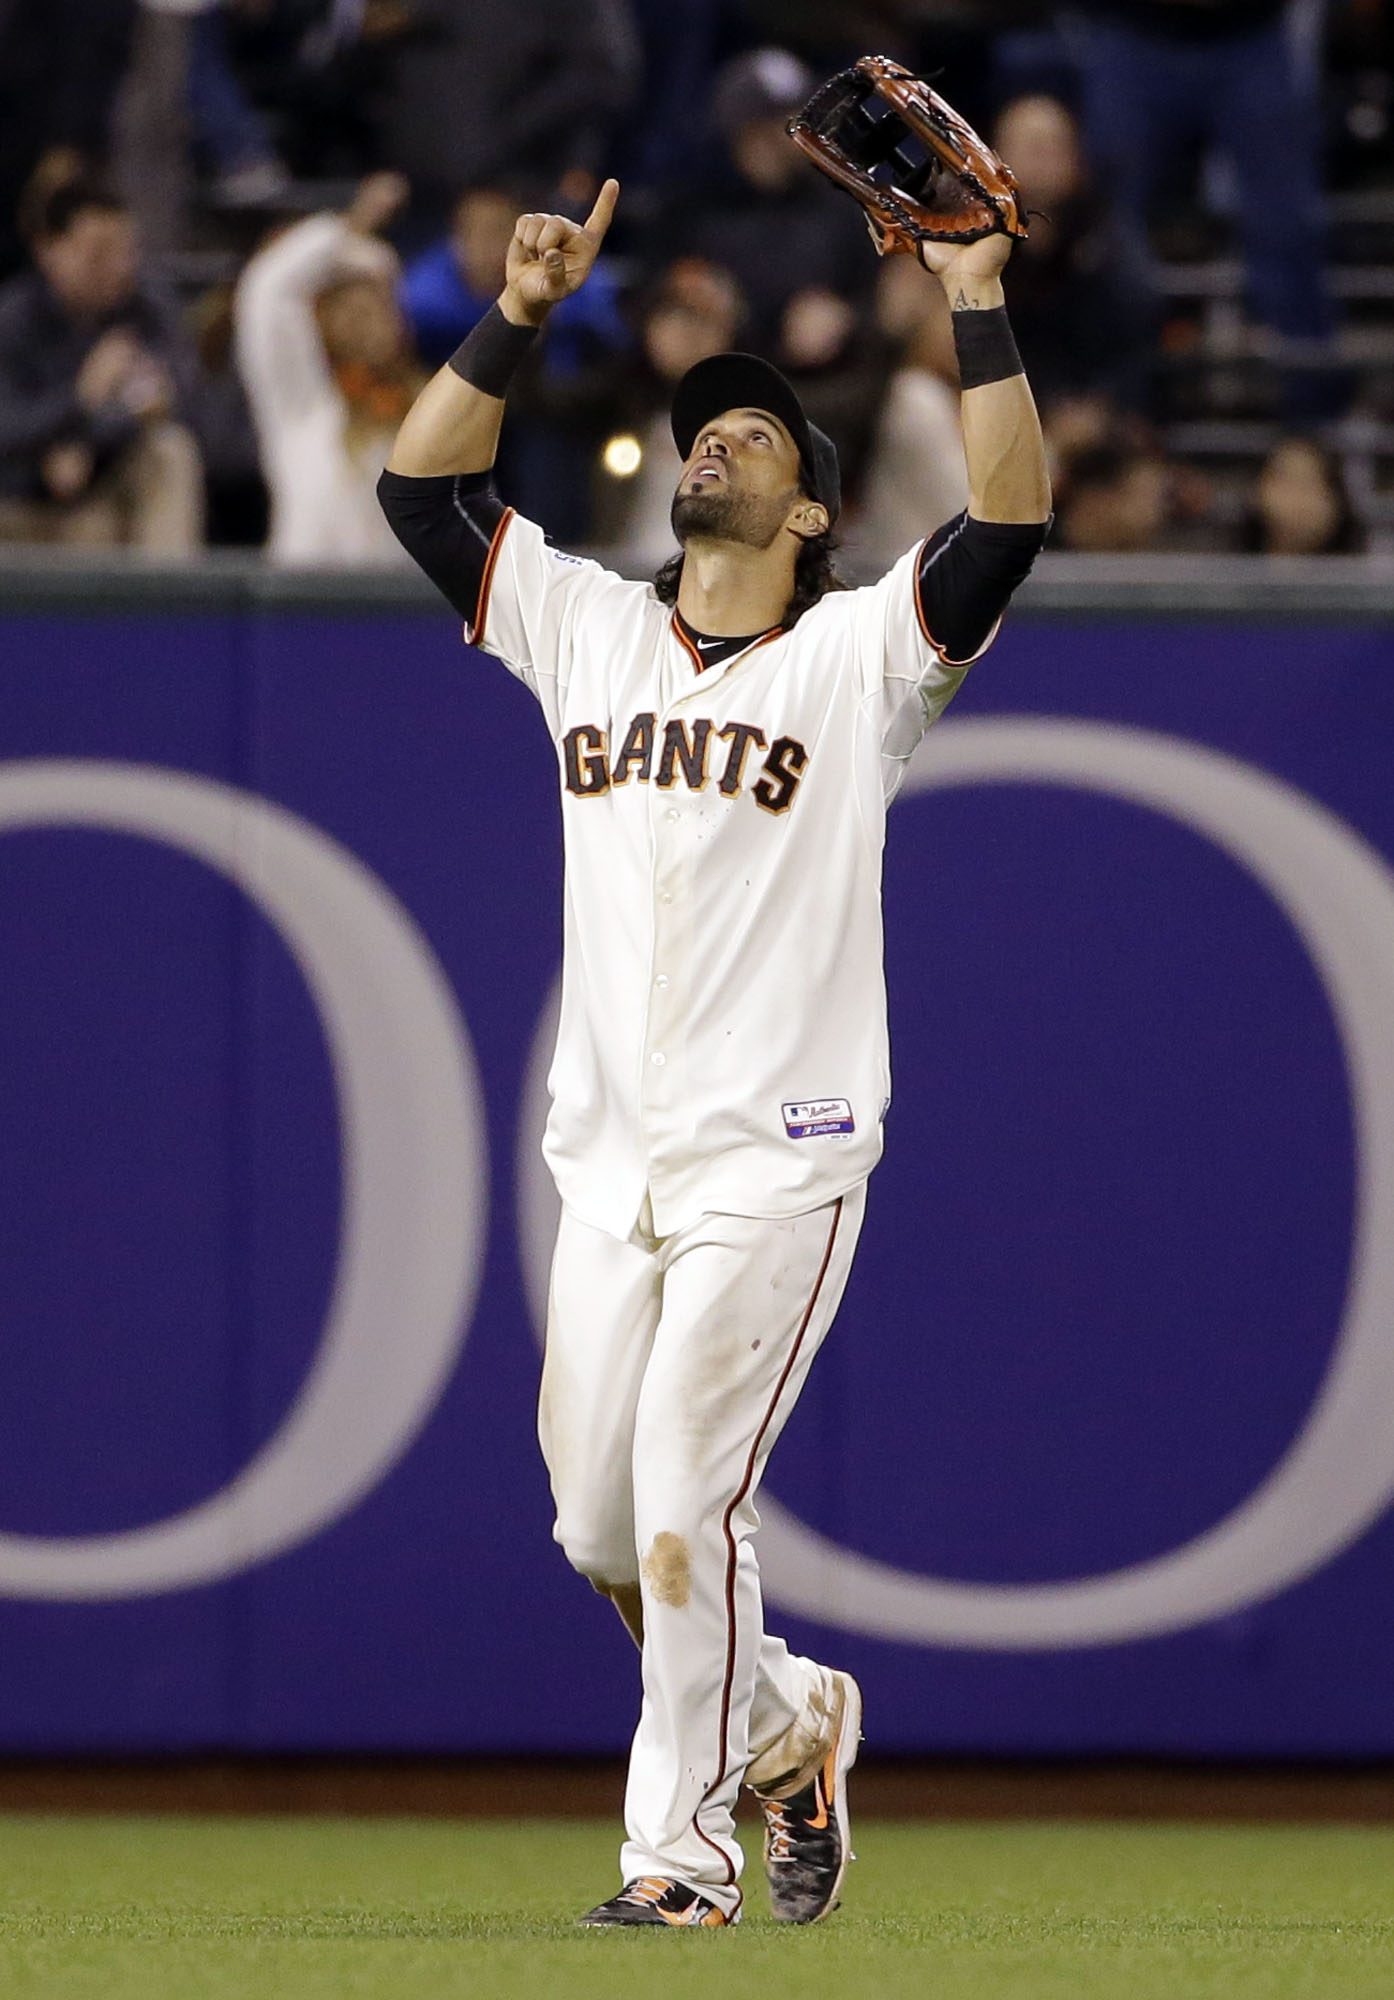 San Francisco Giants center fielder Angel Pagan celebrates after a 2-0 win over the San Diego Padres during a baseball game Monday, May 4, 2015, in San Francisco. (AP Photo/Marcio Jose Sanchez)